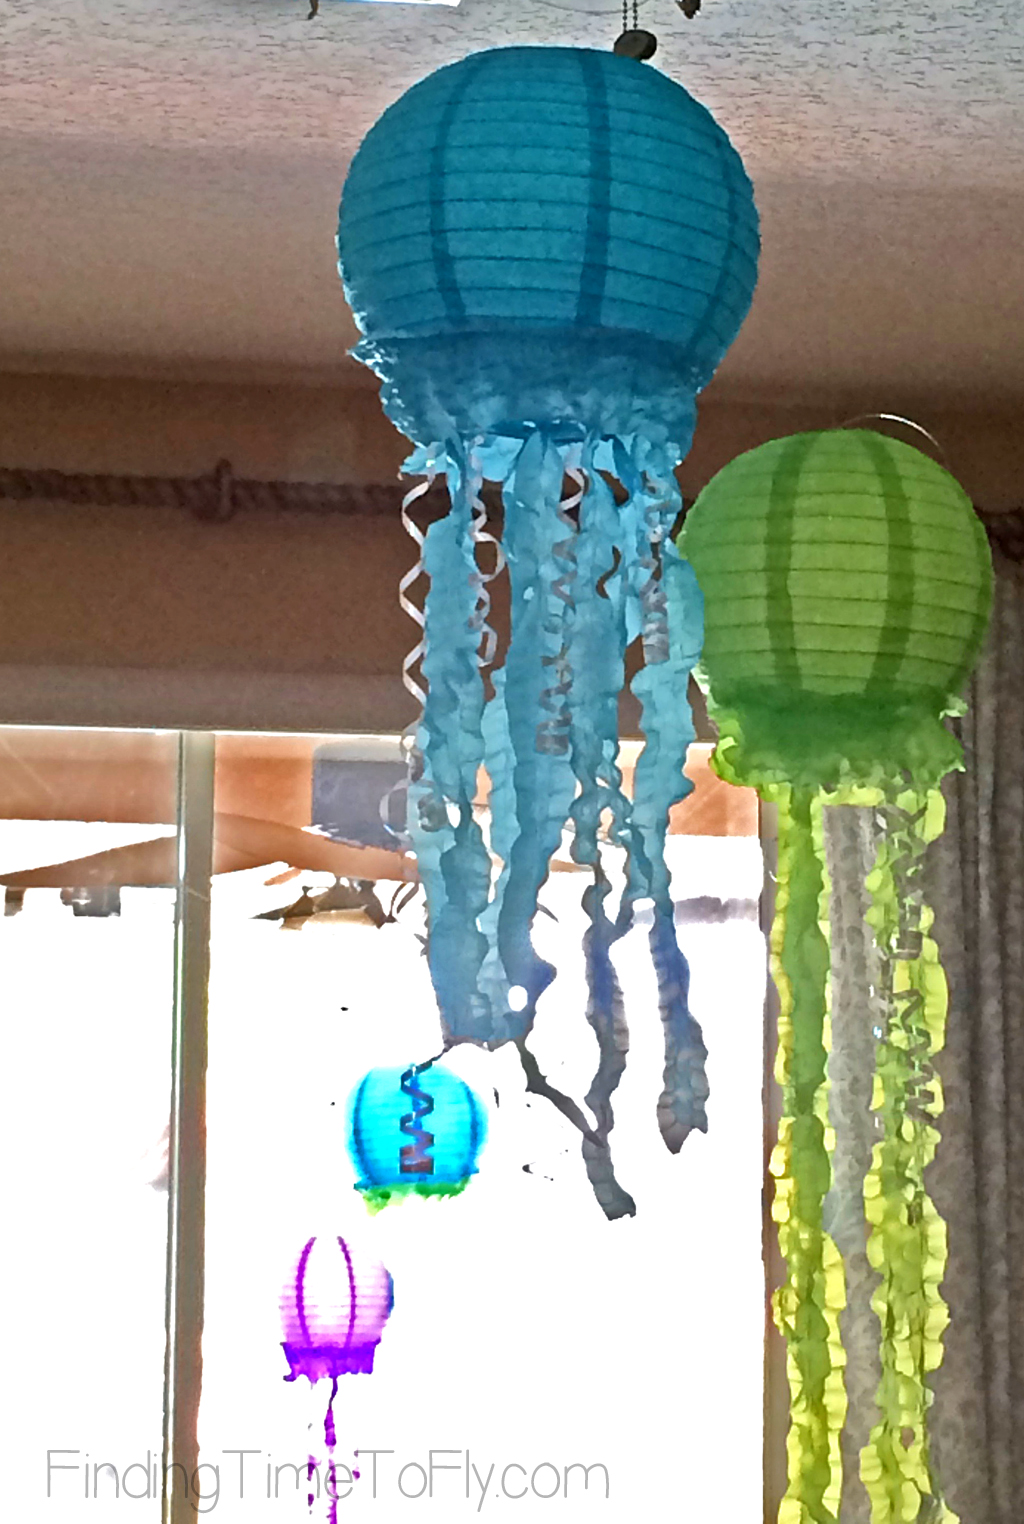 mermaid-under-the-sea-party-jellyfish-lanterns-inside-1